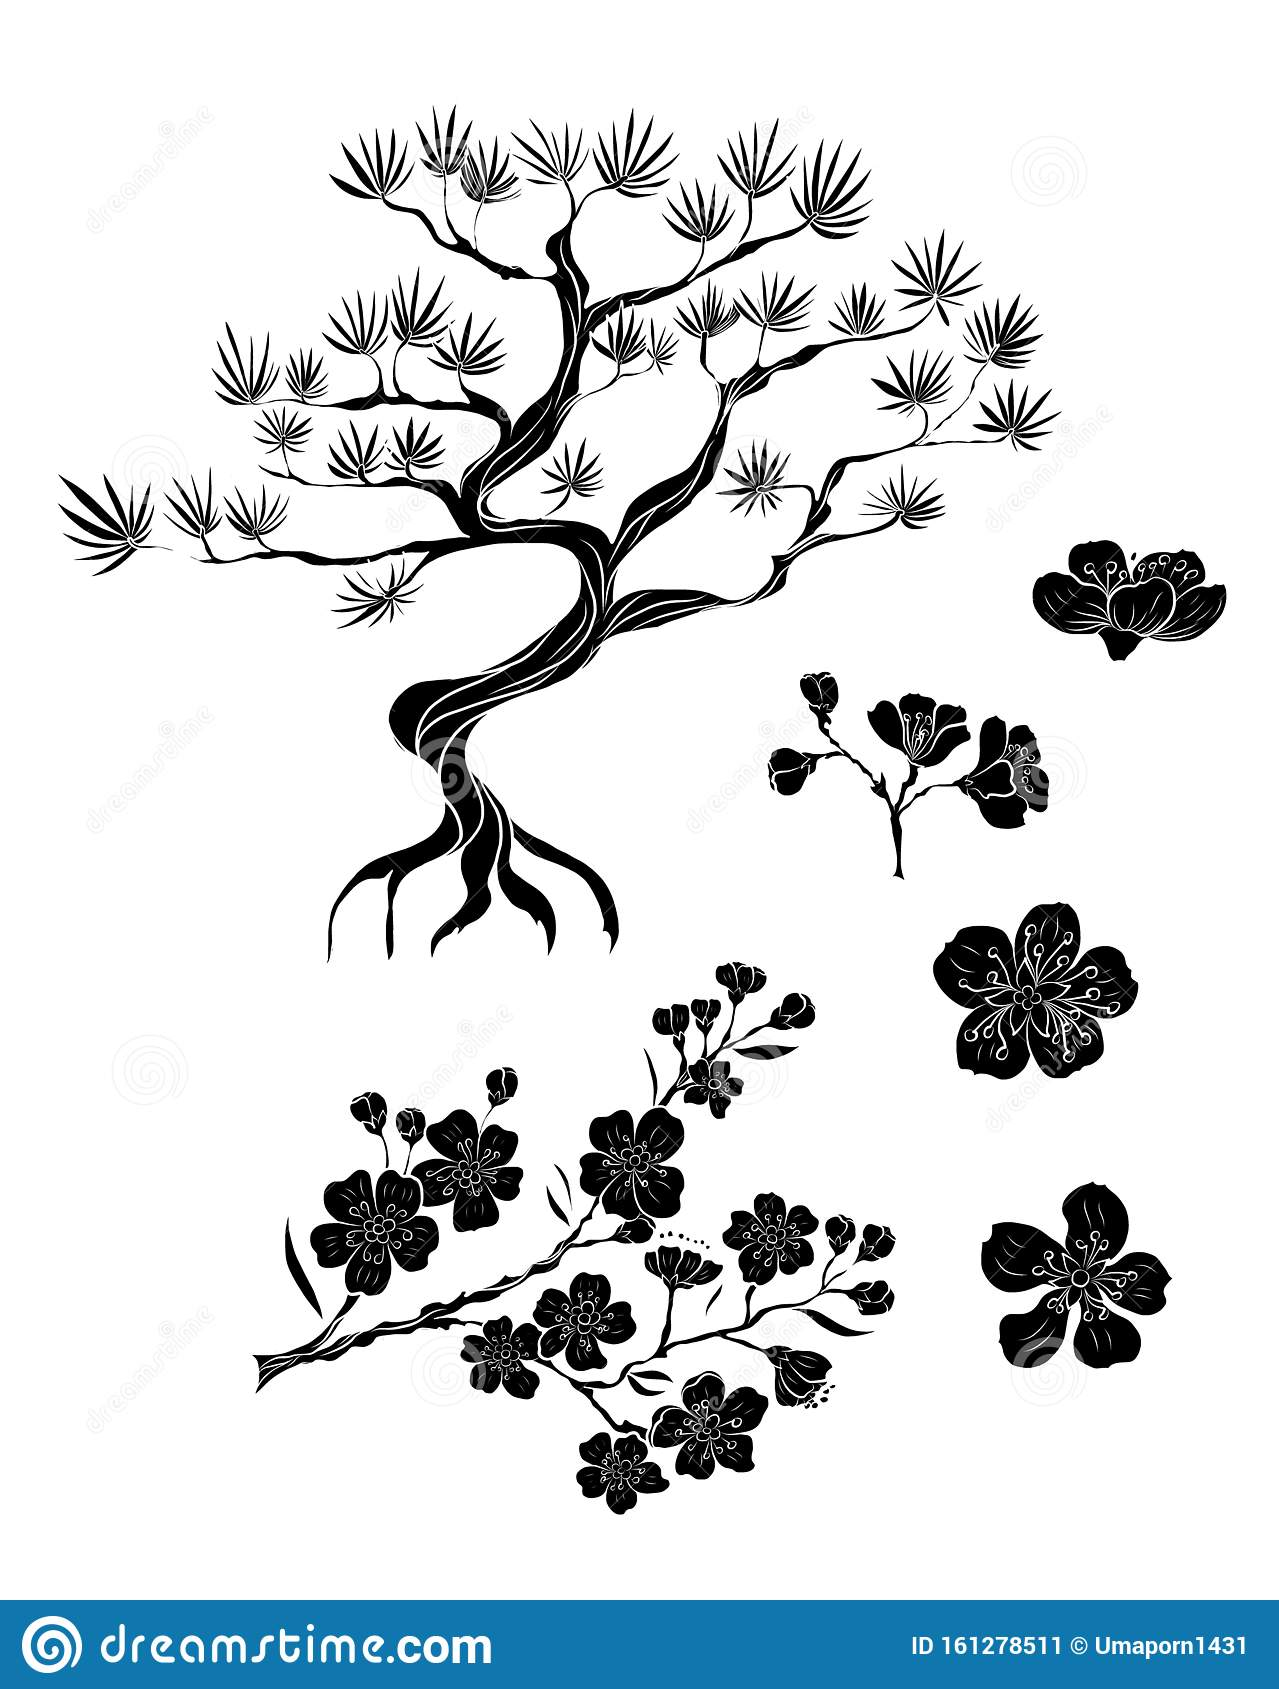 Sakura Flowervector On Background Pattern For Printing Design Chinese Tattoo Korean Background For Tattoo Style Stock Vector Illustration Of Fish Asian 161278511